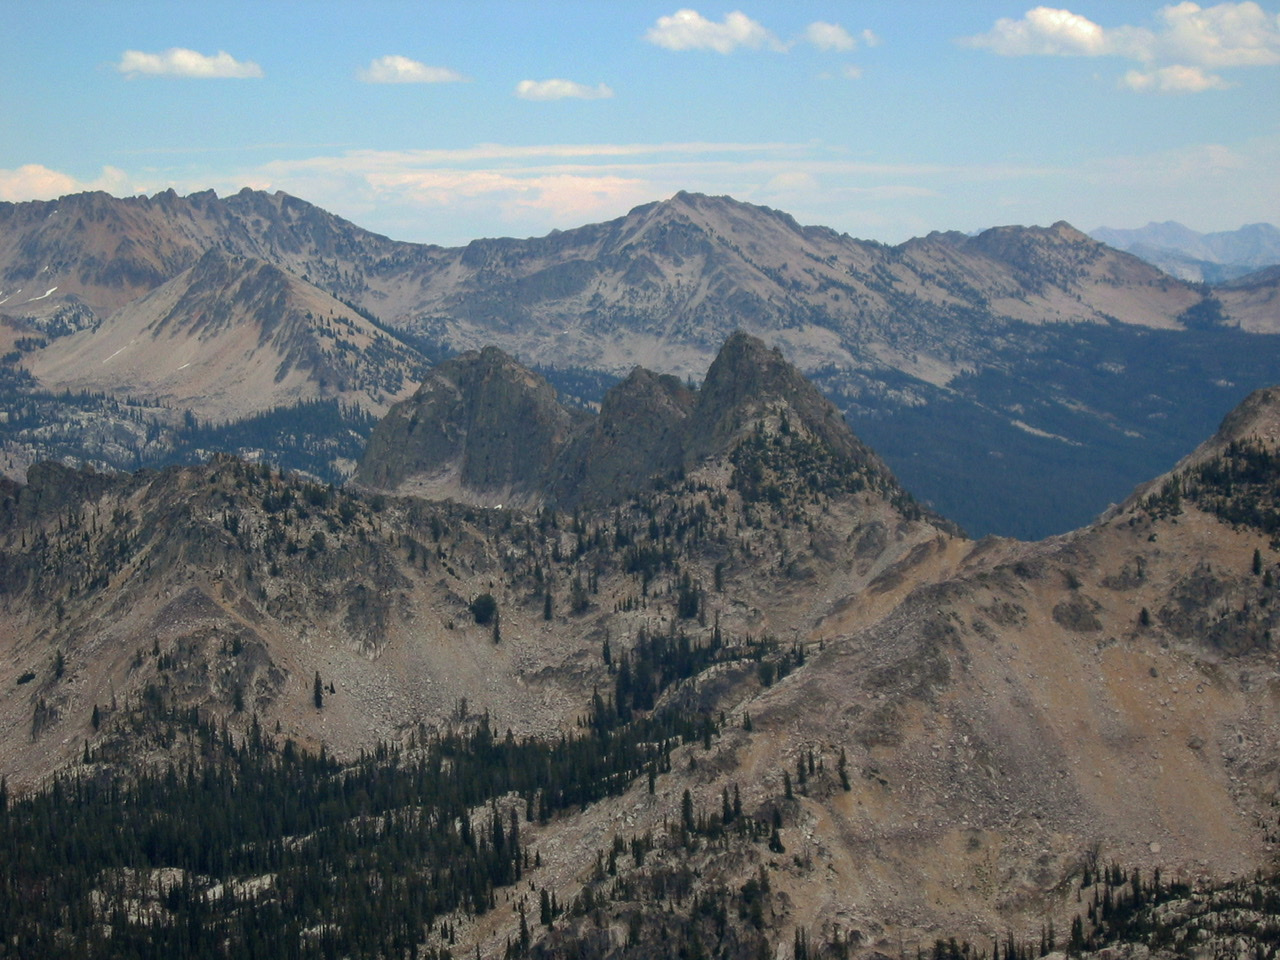 JT Peak viewed from the west. Ray Brooks photo shot in 2006 from just north of the North Raker.